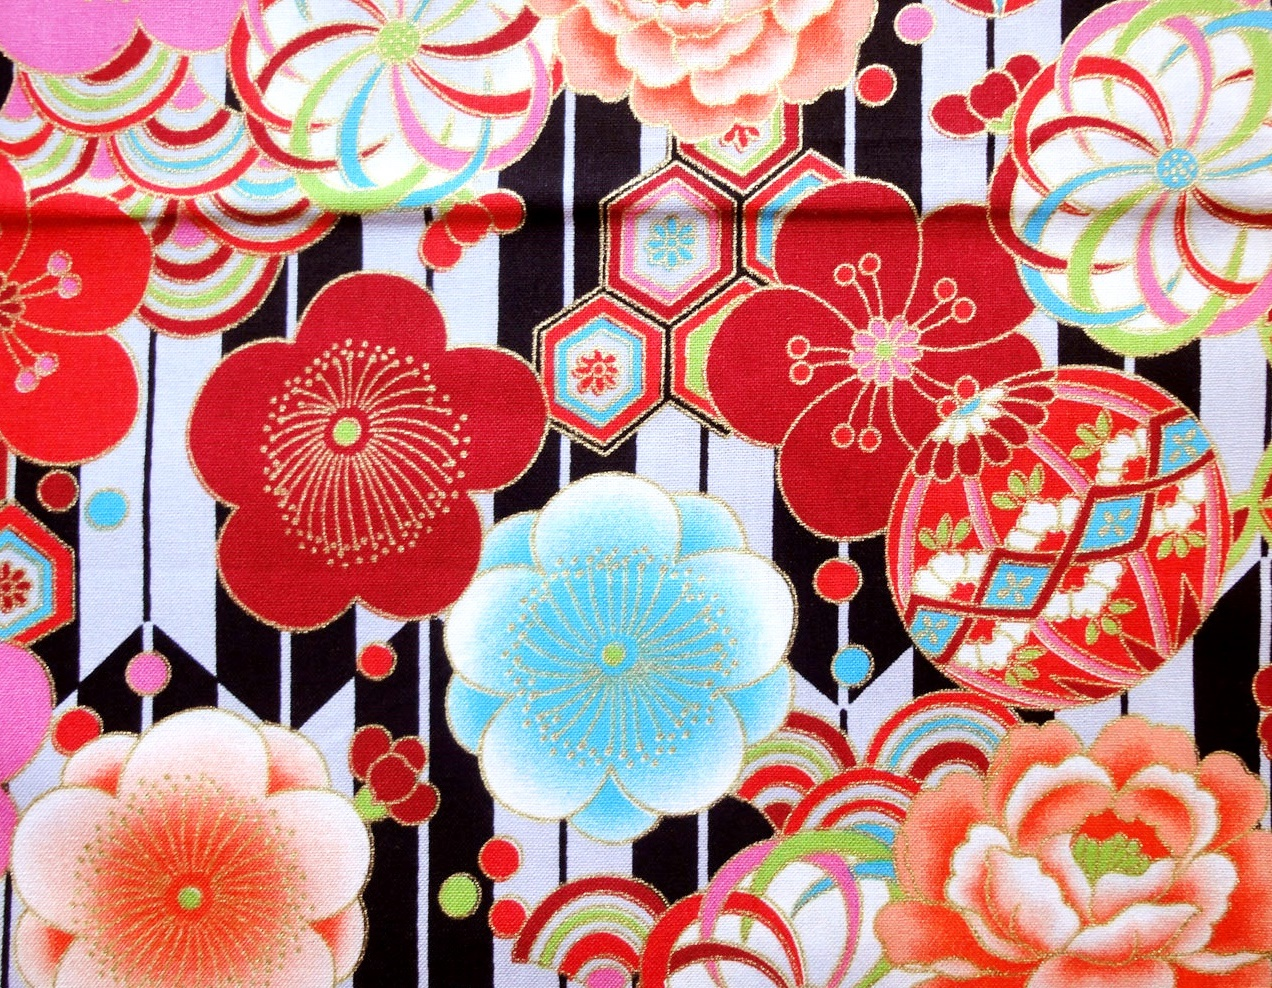 HJ2030 Yagasuri & Japanese Flowers pattern colorful fabric 36M